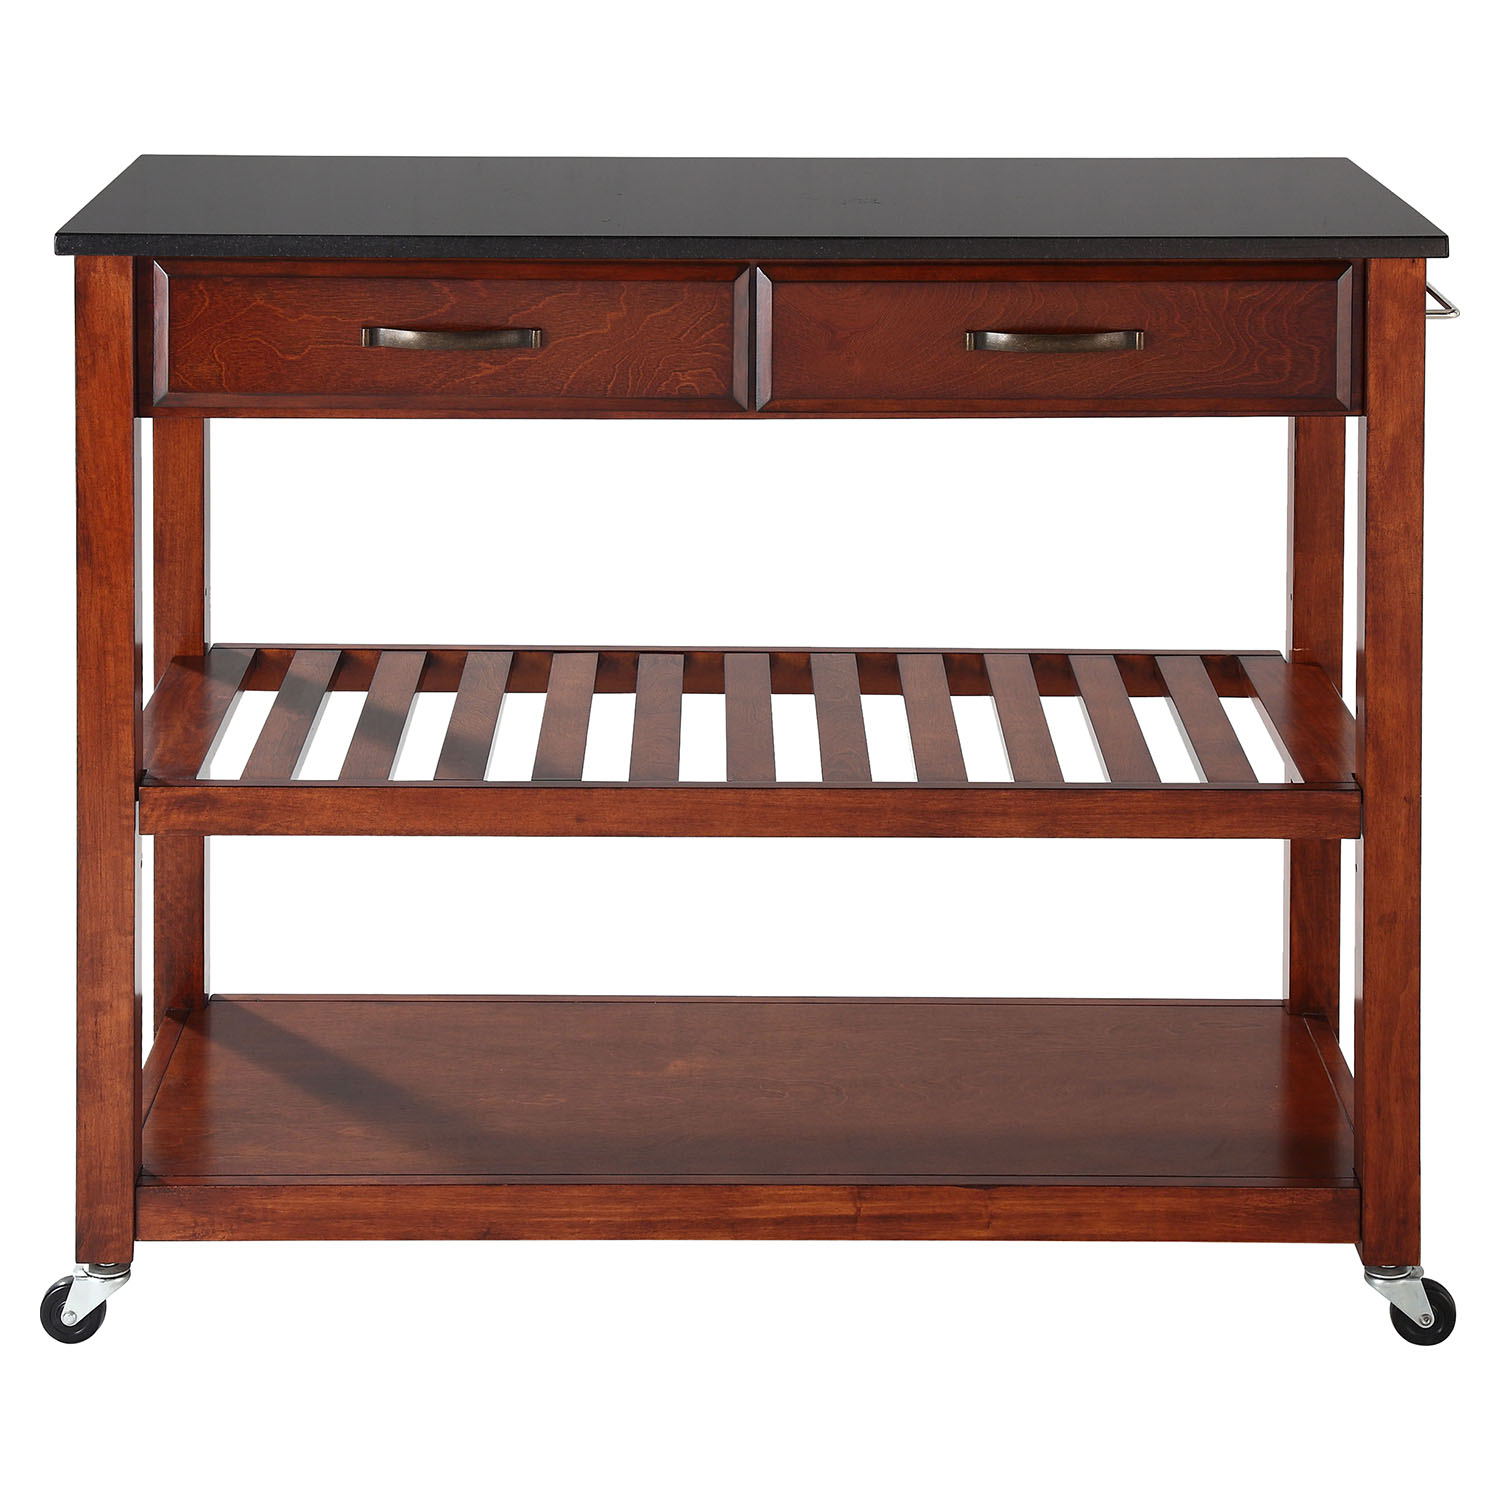 Solid Black Granite Top Kitchen Island Cart - Classic Cherry - CROS-KF30054CH